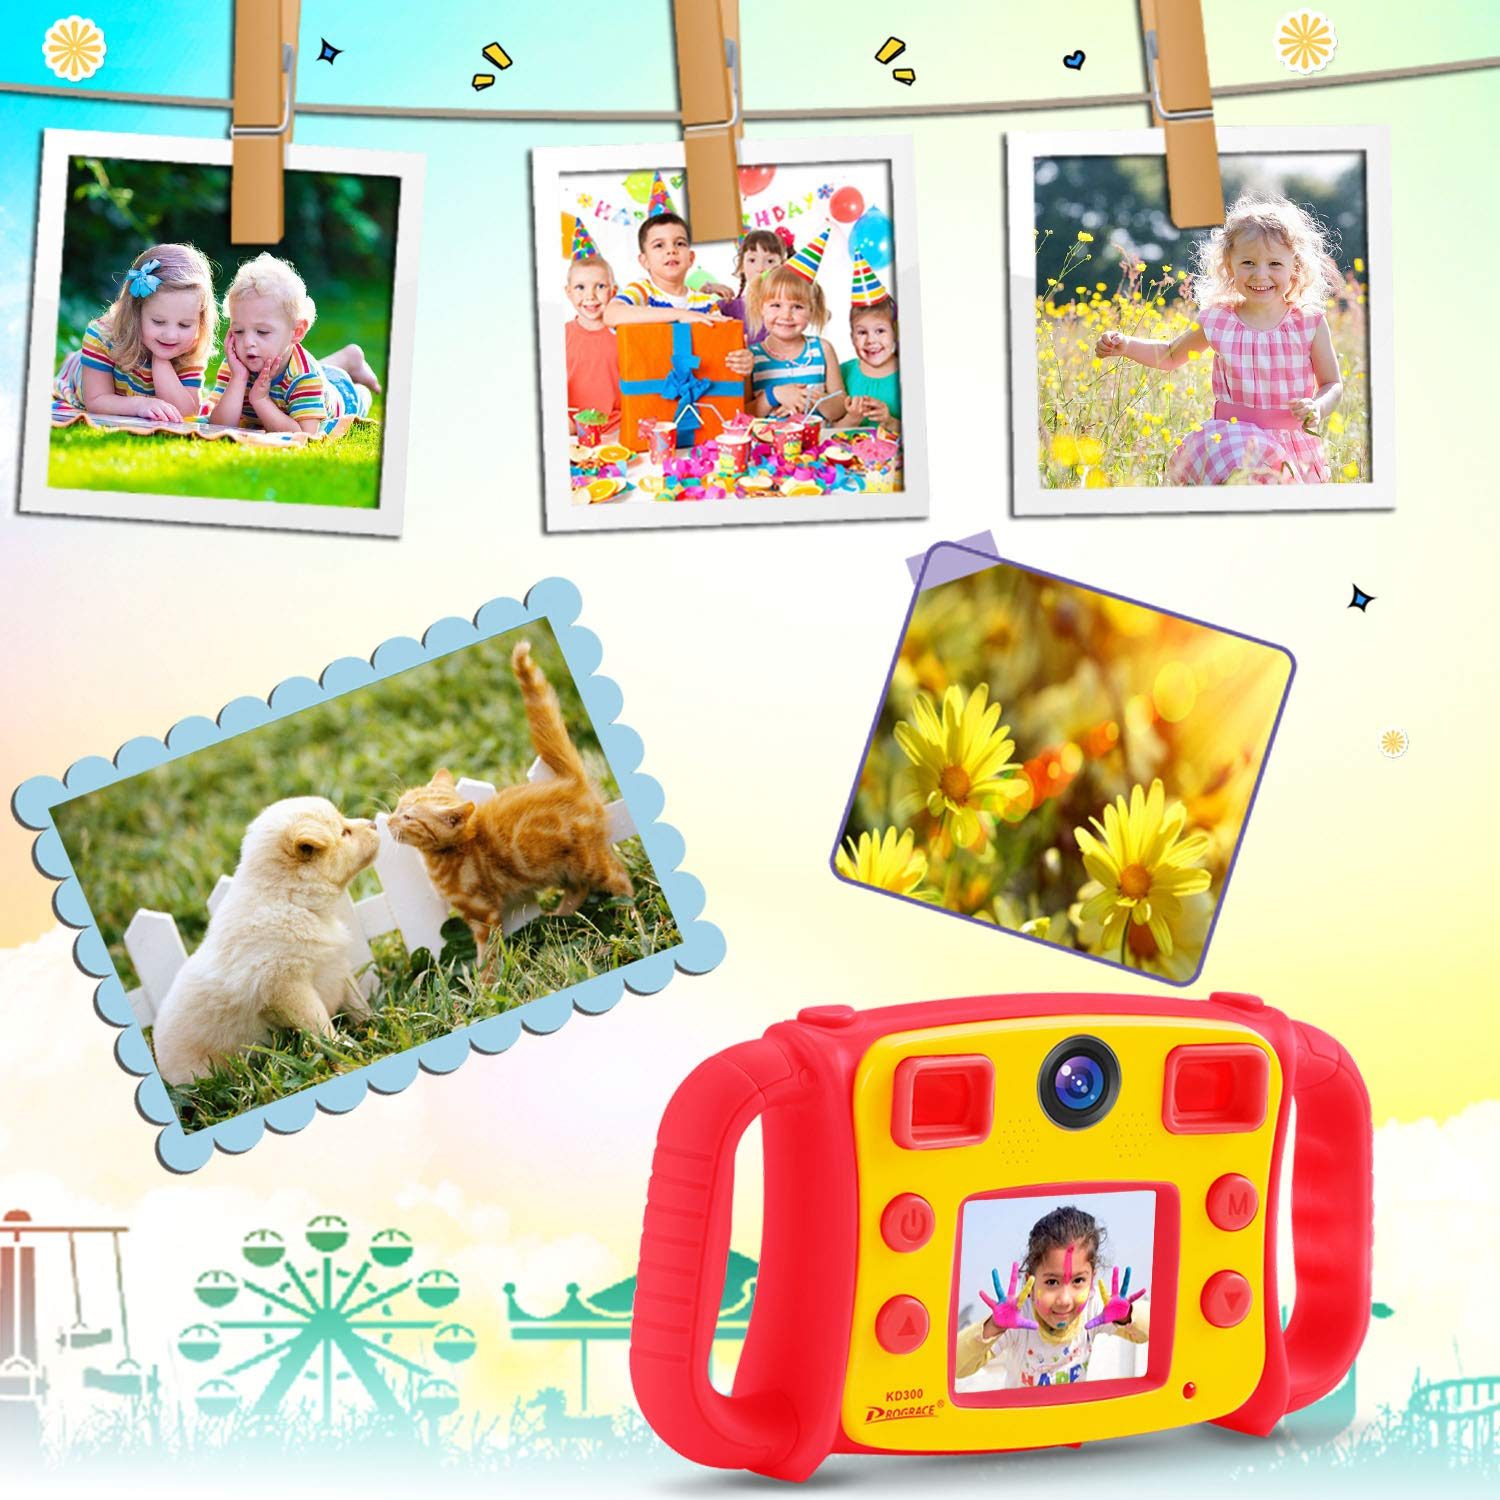 Prograce Kids Camera Dual Camera Selfie Digital Video Camera Camcorder for Boys Girls with 4X Digital Zoom, Flash Light and Funny Game(Red) by Prograce (Image #5)